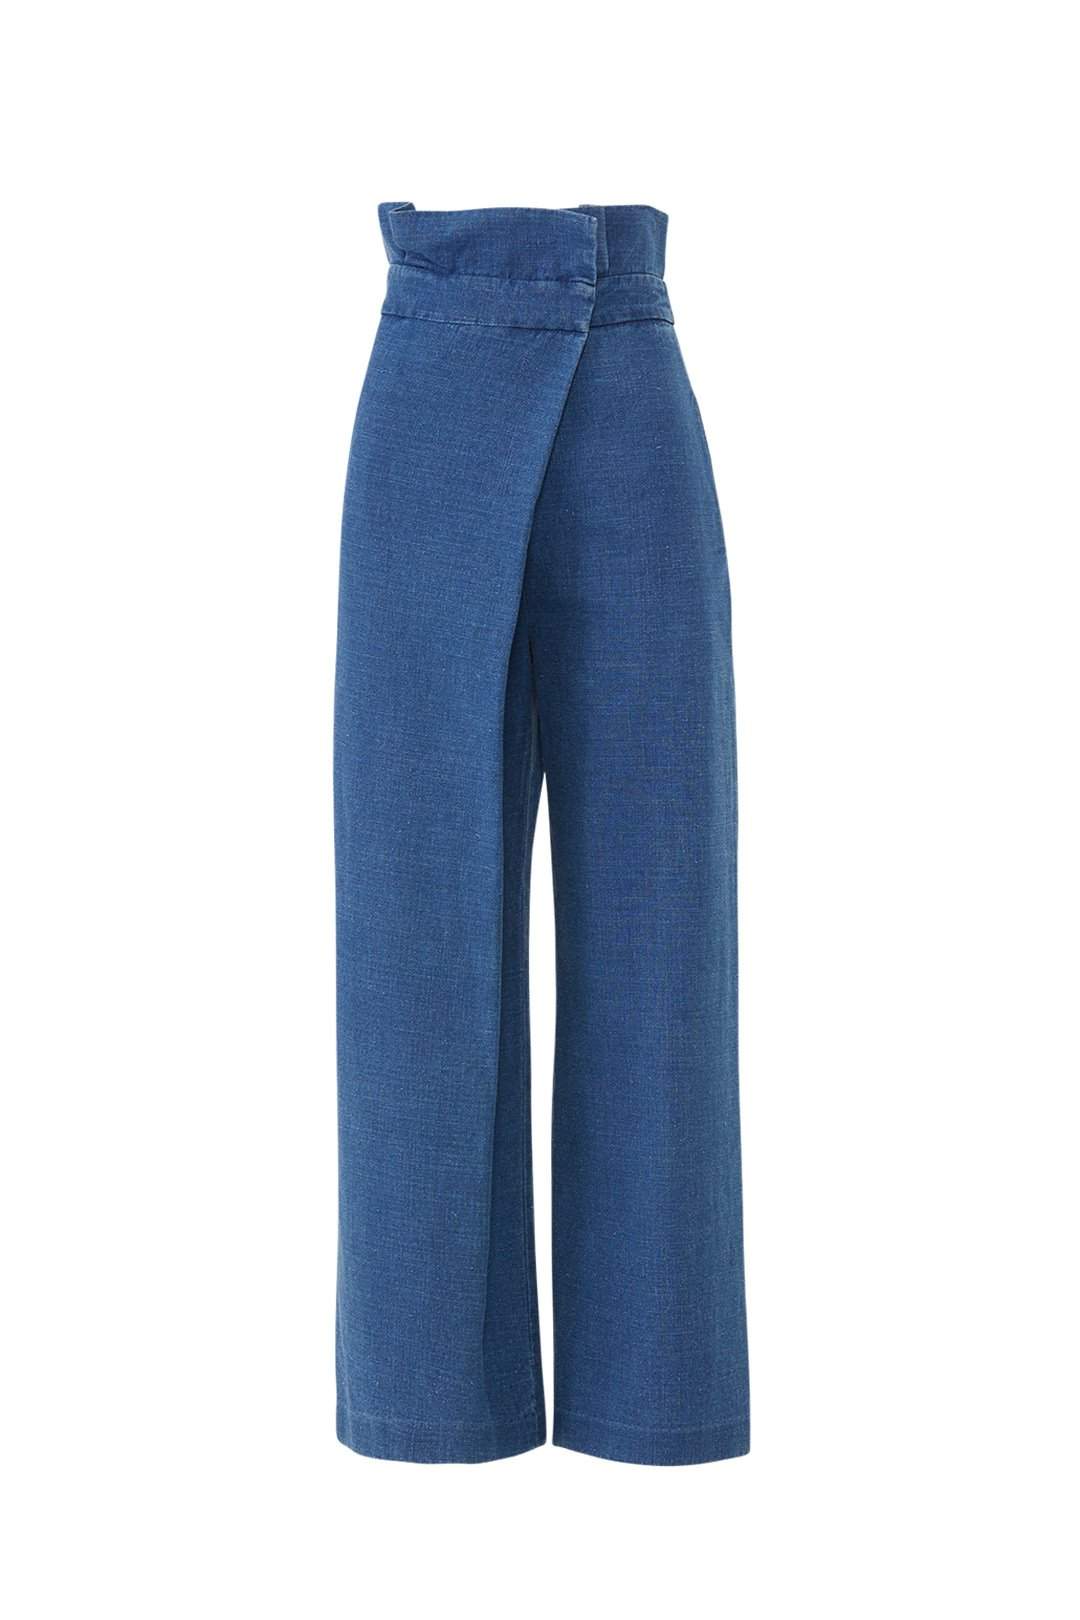 Nikko Wrap Flare Jeans by Mara Hoffman for $65 | Rent the Runway